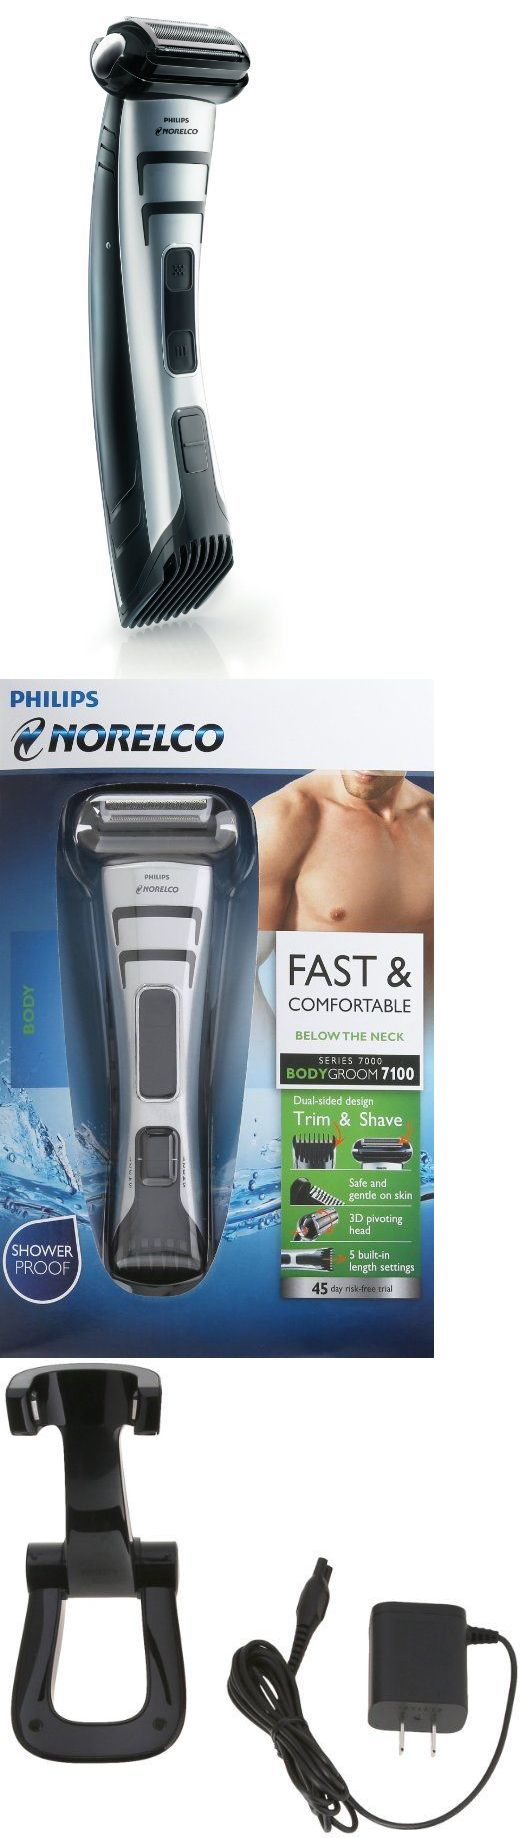 Mens Shavers: Philips Norelco Bodygroom Series 7100, Bg2040 =New Sealed= -> BUY IT NOW ONLY: $59.95 on eBay!